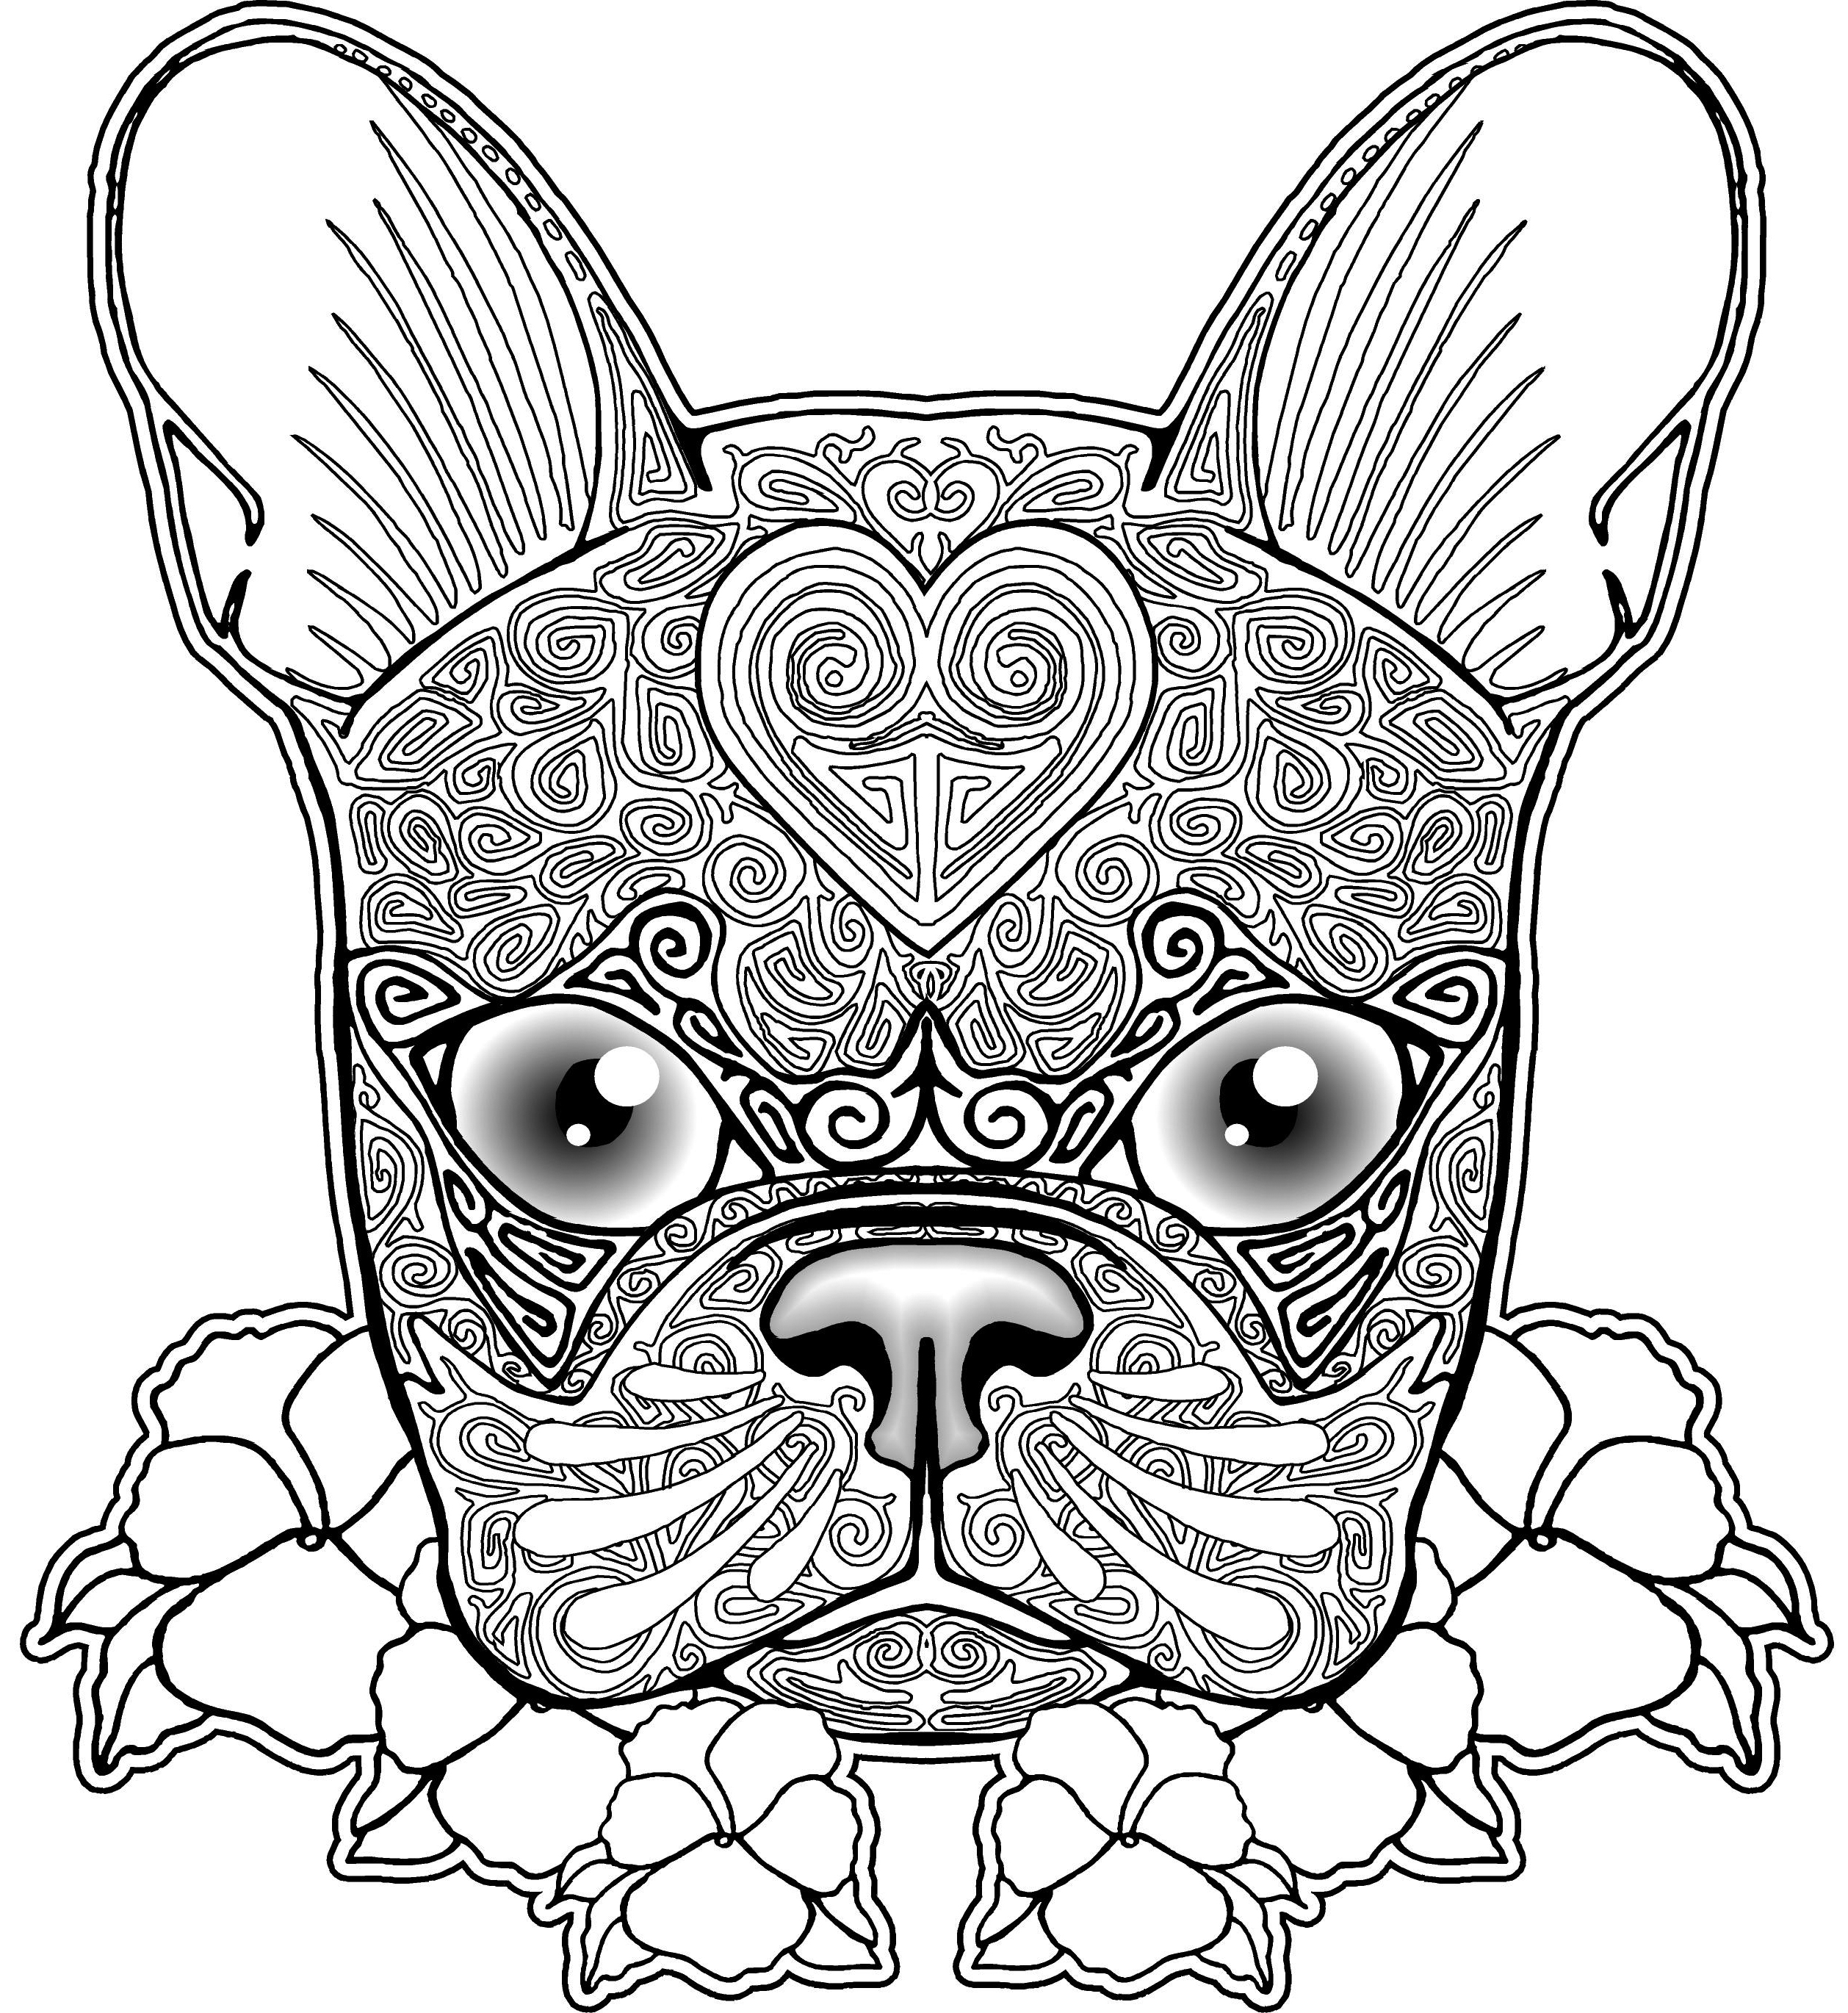 Pug Puppy Coloring Pages French Bulldog Pug Puppy Coloring Pages Print Coloring